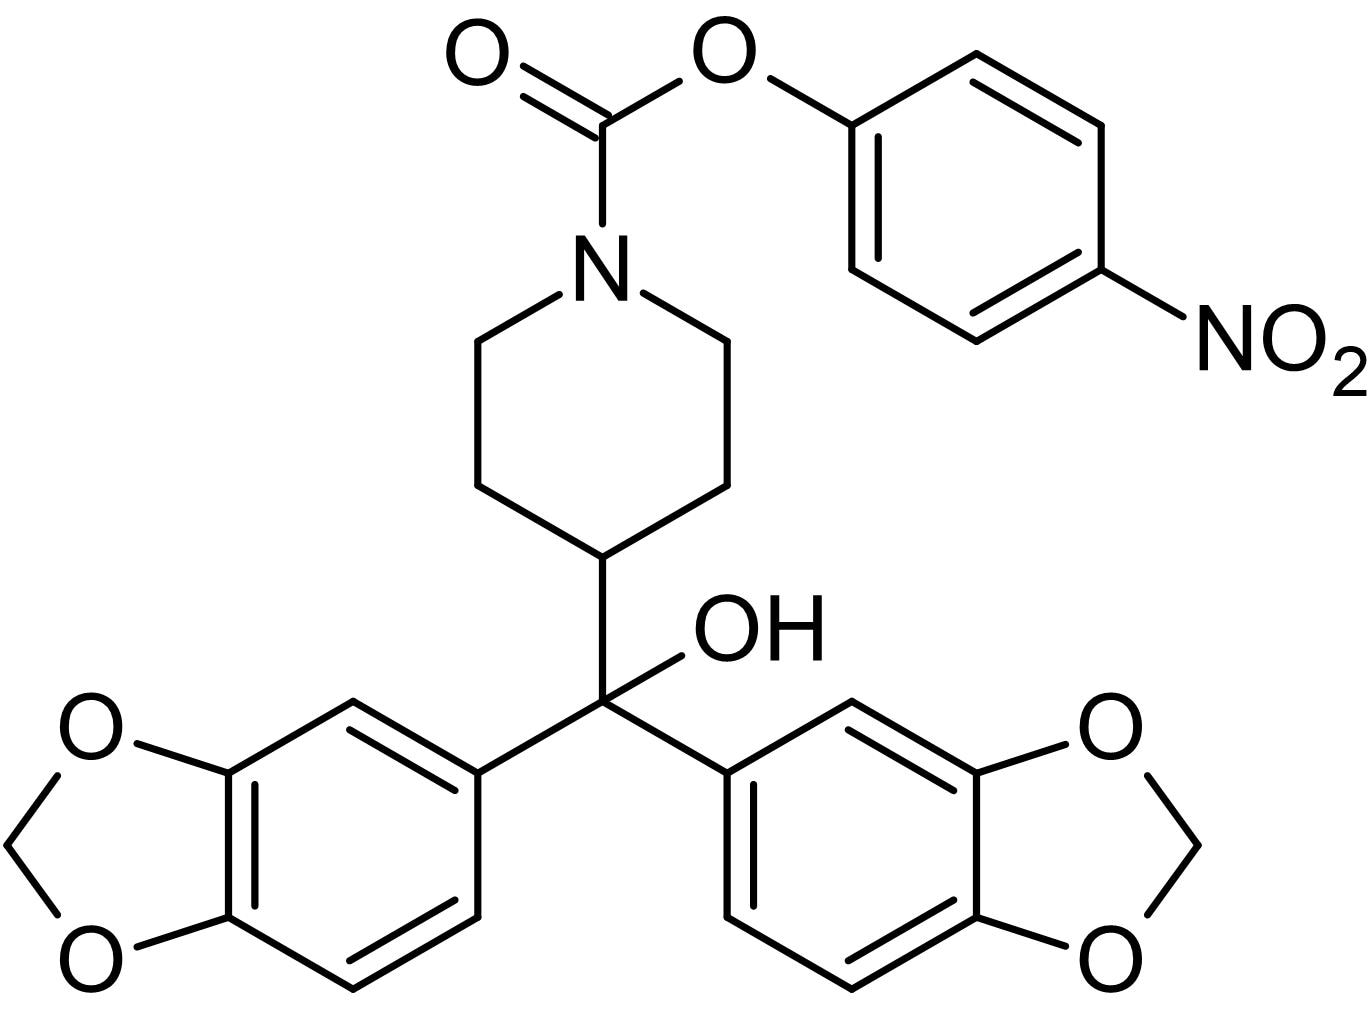 Chemical Structure - JZL-184, monoacylglycerol lipase (MAGL) inhibitor (ab141592)